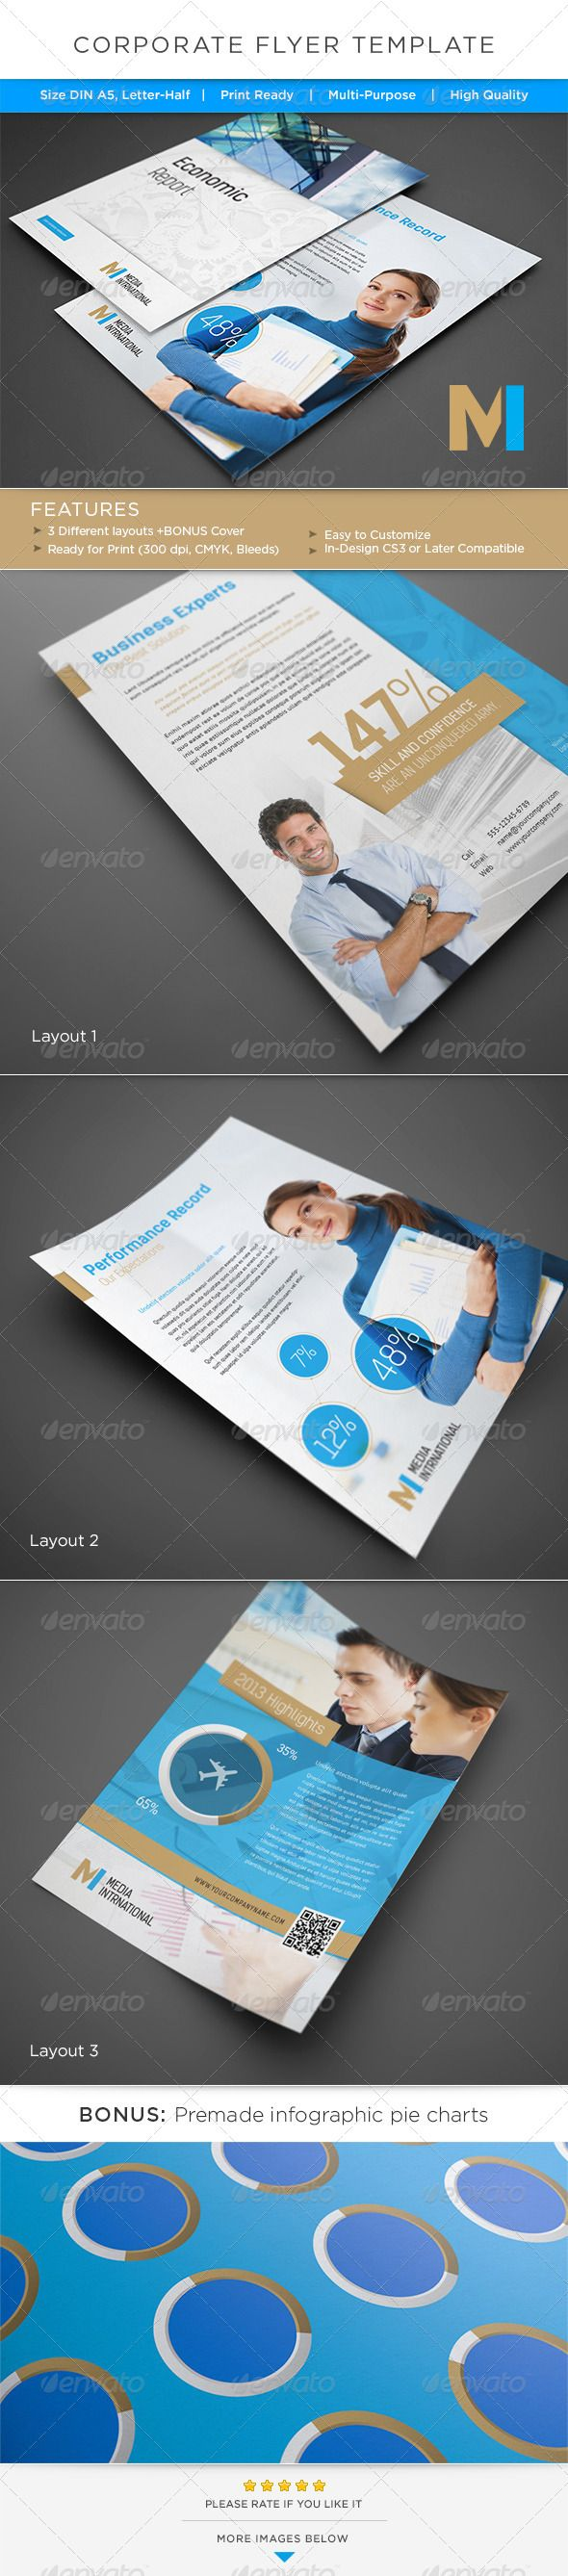 Corporate Flyer / AD Template — InDesign INDD #blue #magazine ad • Available here → https://graphicriver.net/item/corporate-flyer-ad-template/4968062?ref=pxcr